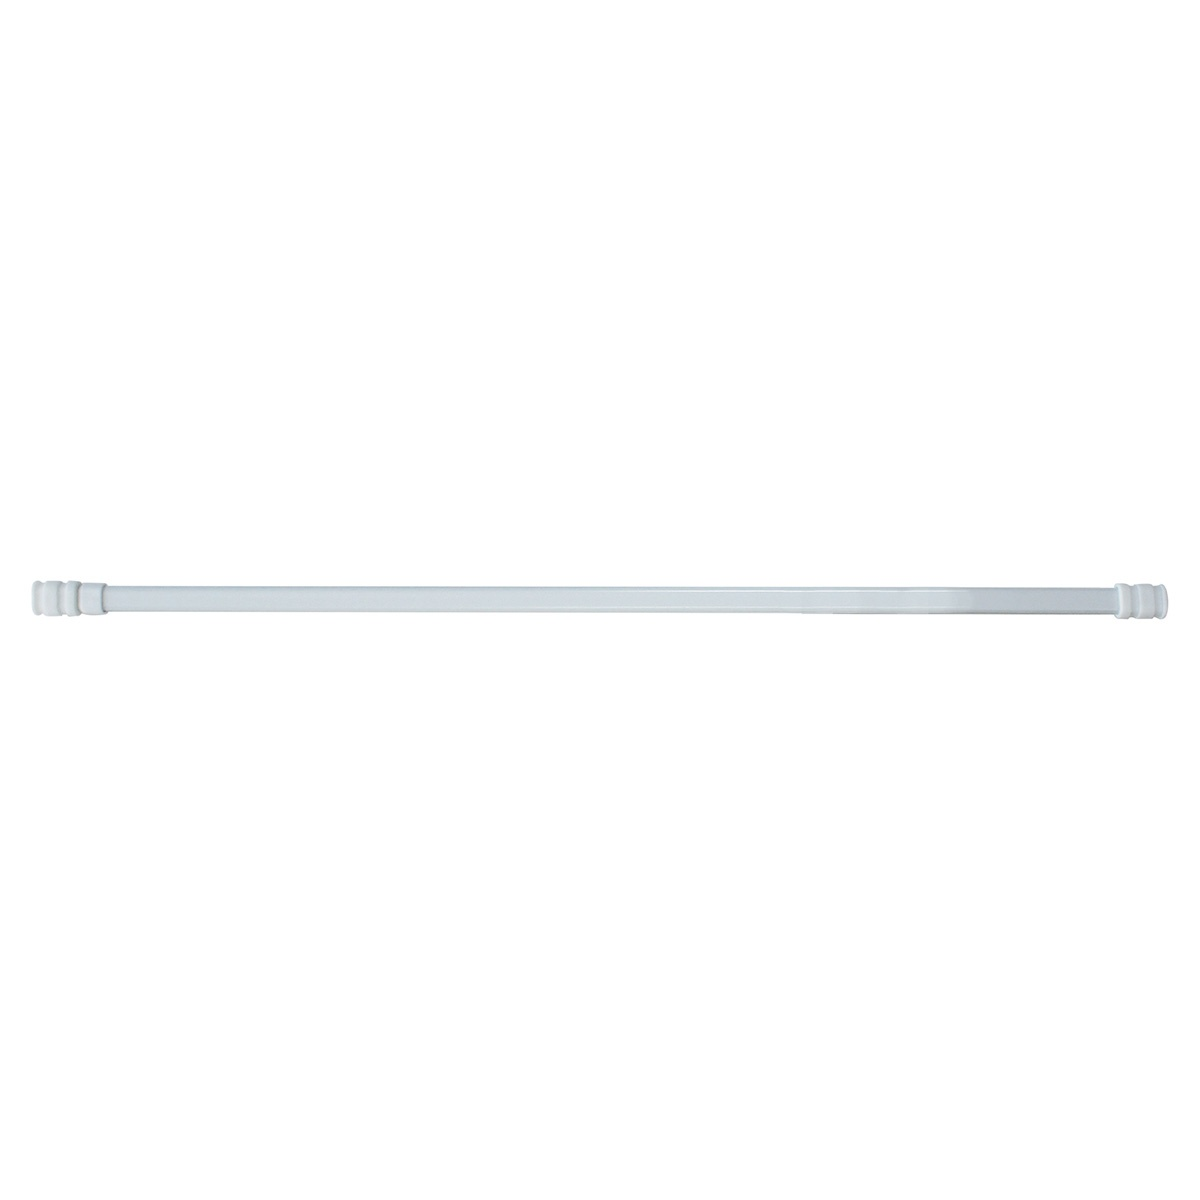 Tringle Ovale Extensible 13mm en Métal (Blanc)